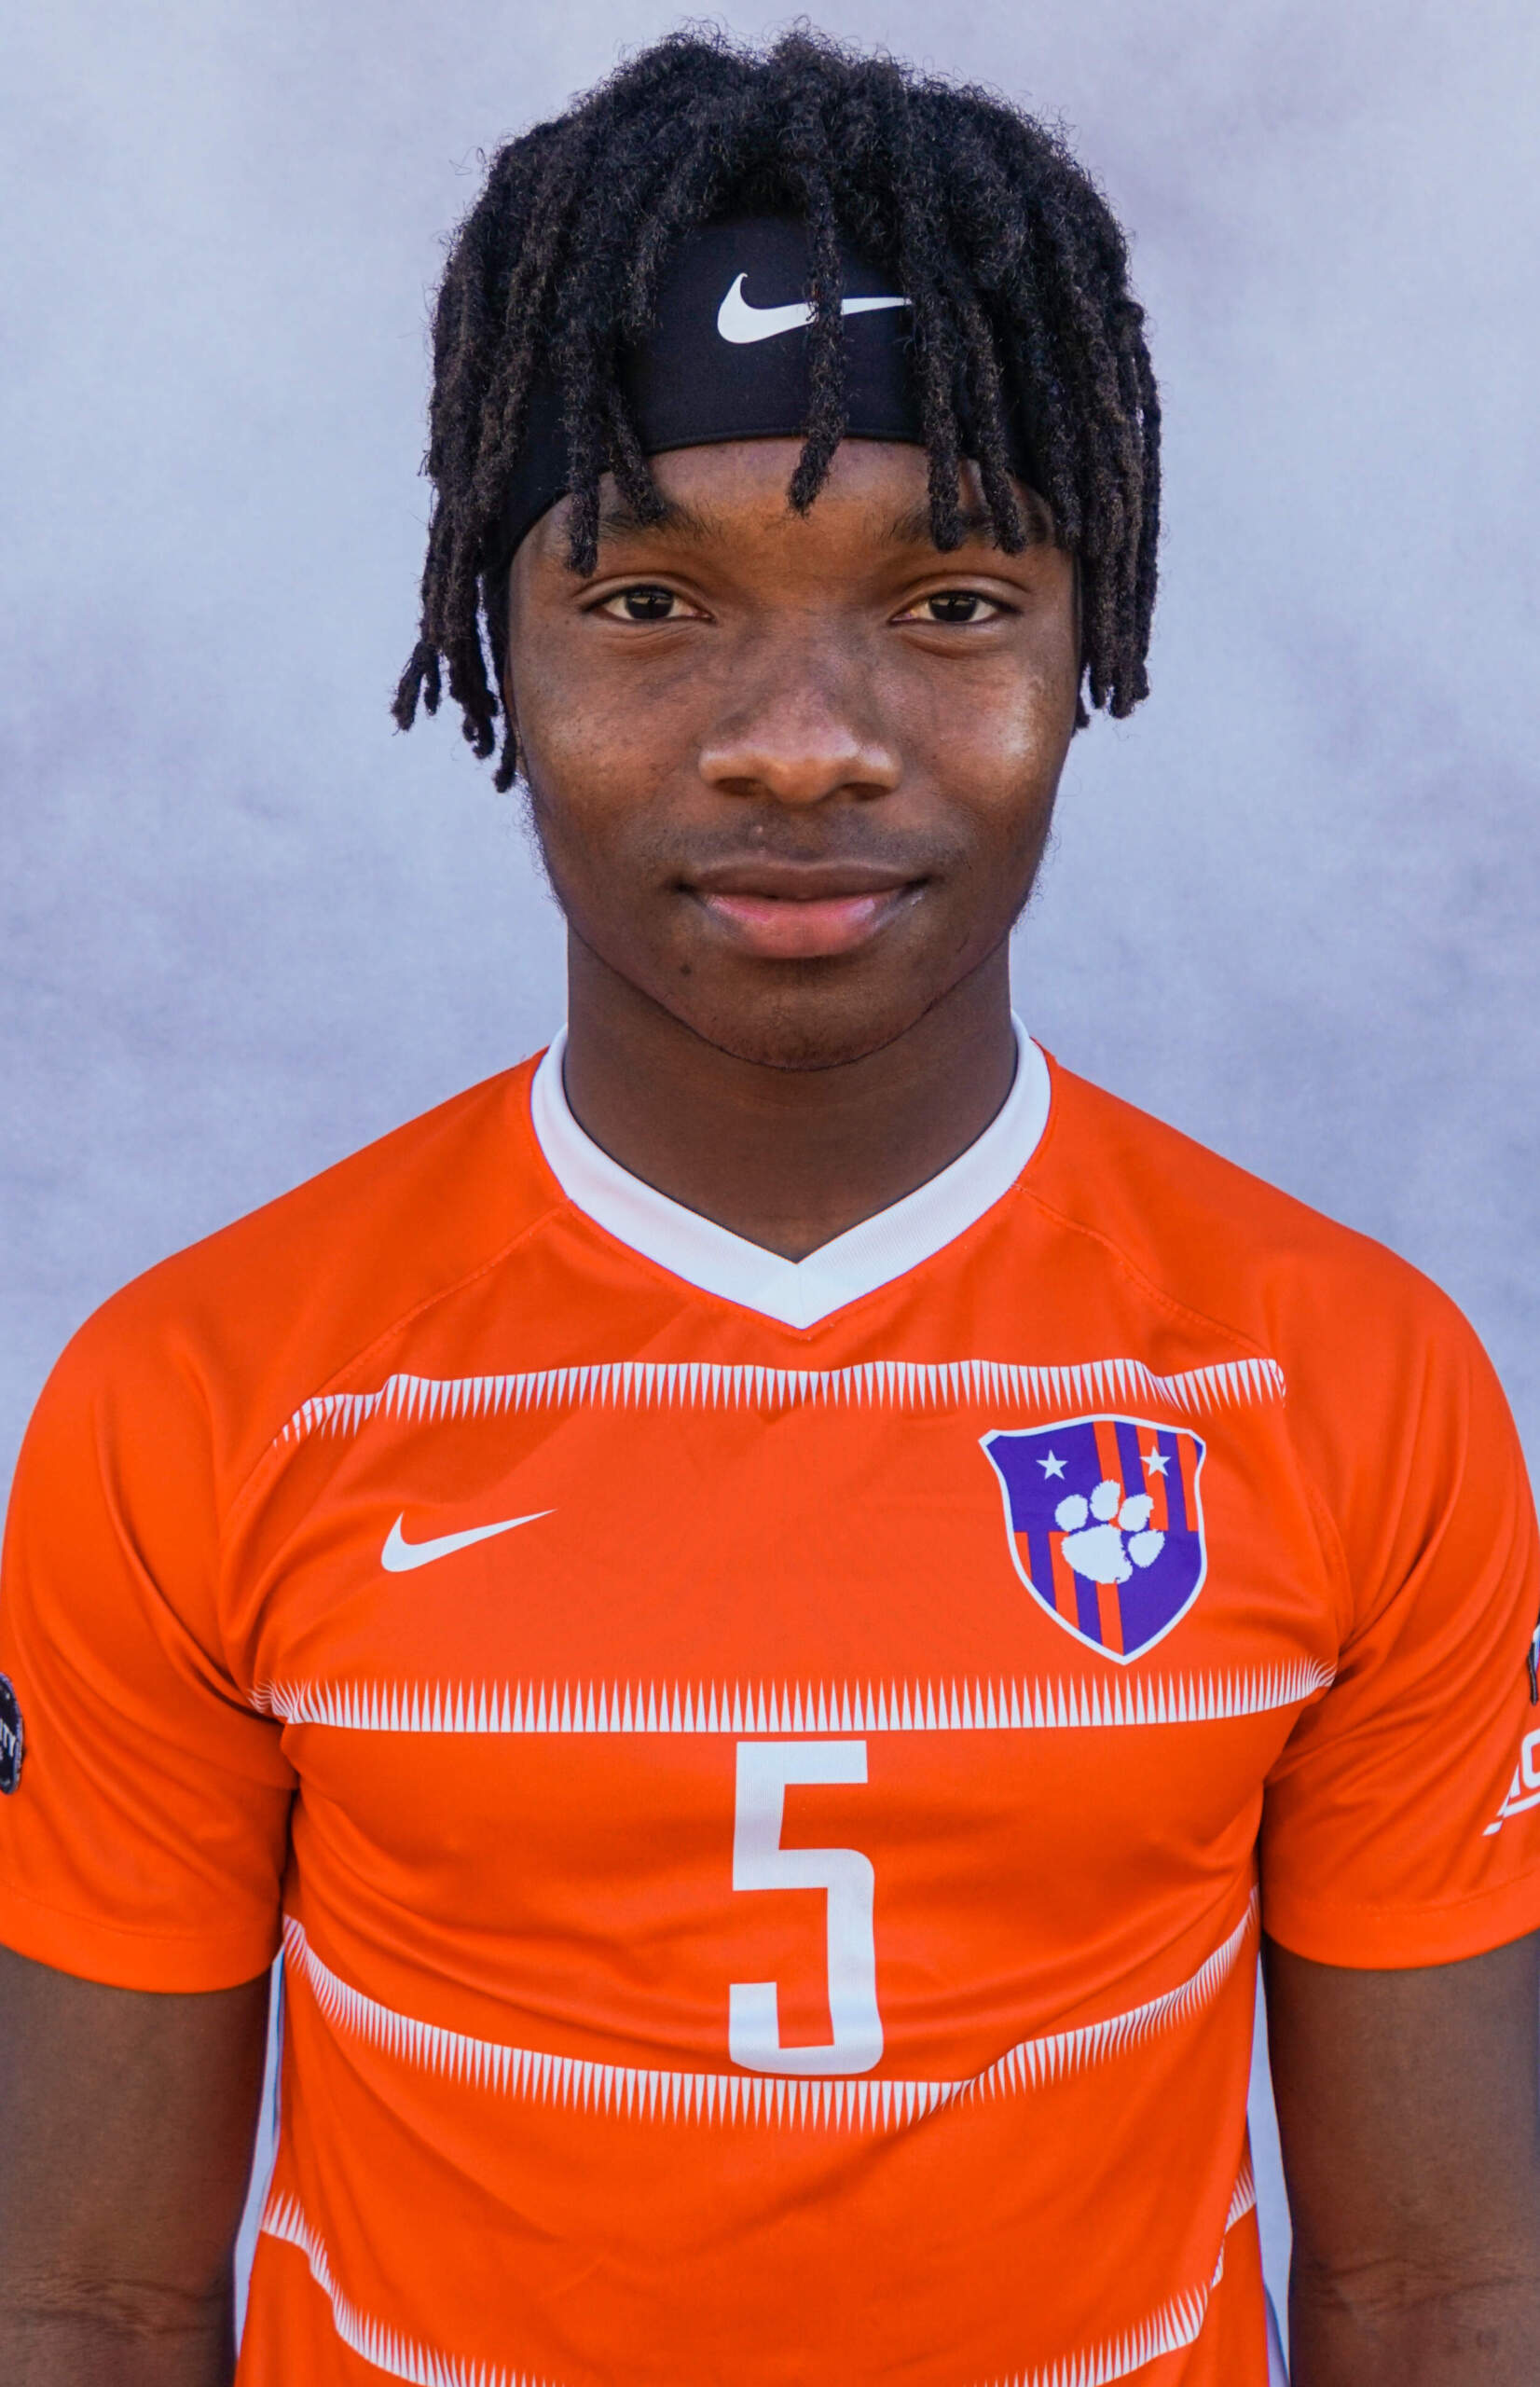 Hamady Diop - Men's Soccer - Clemson University Athletics